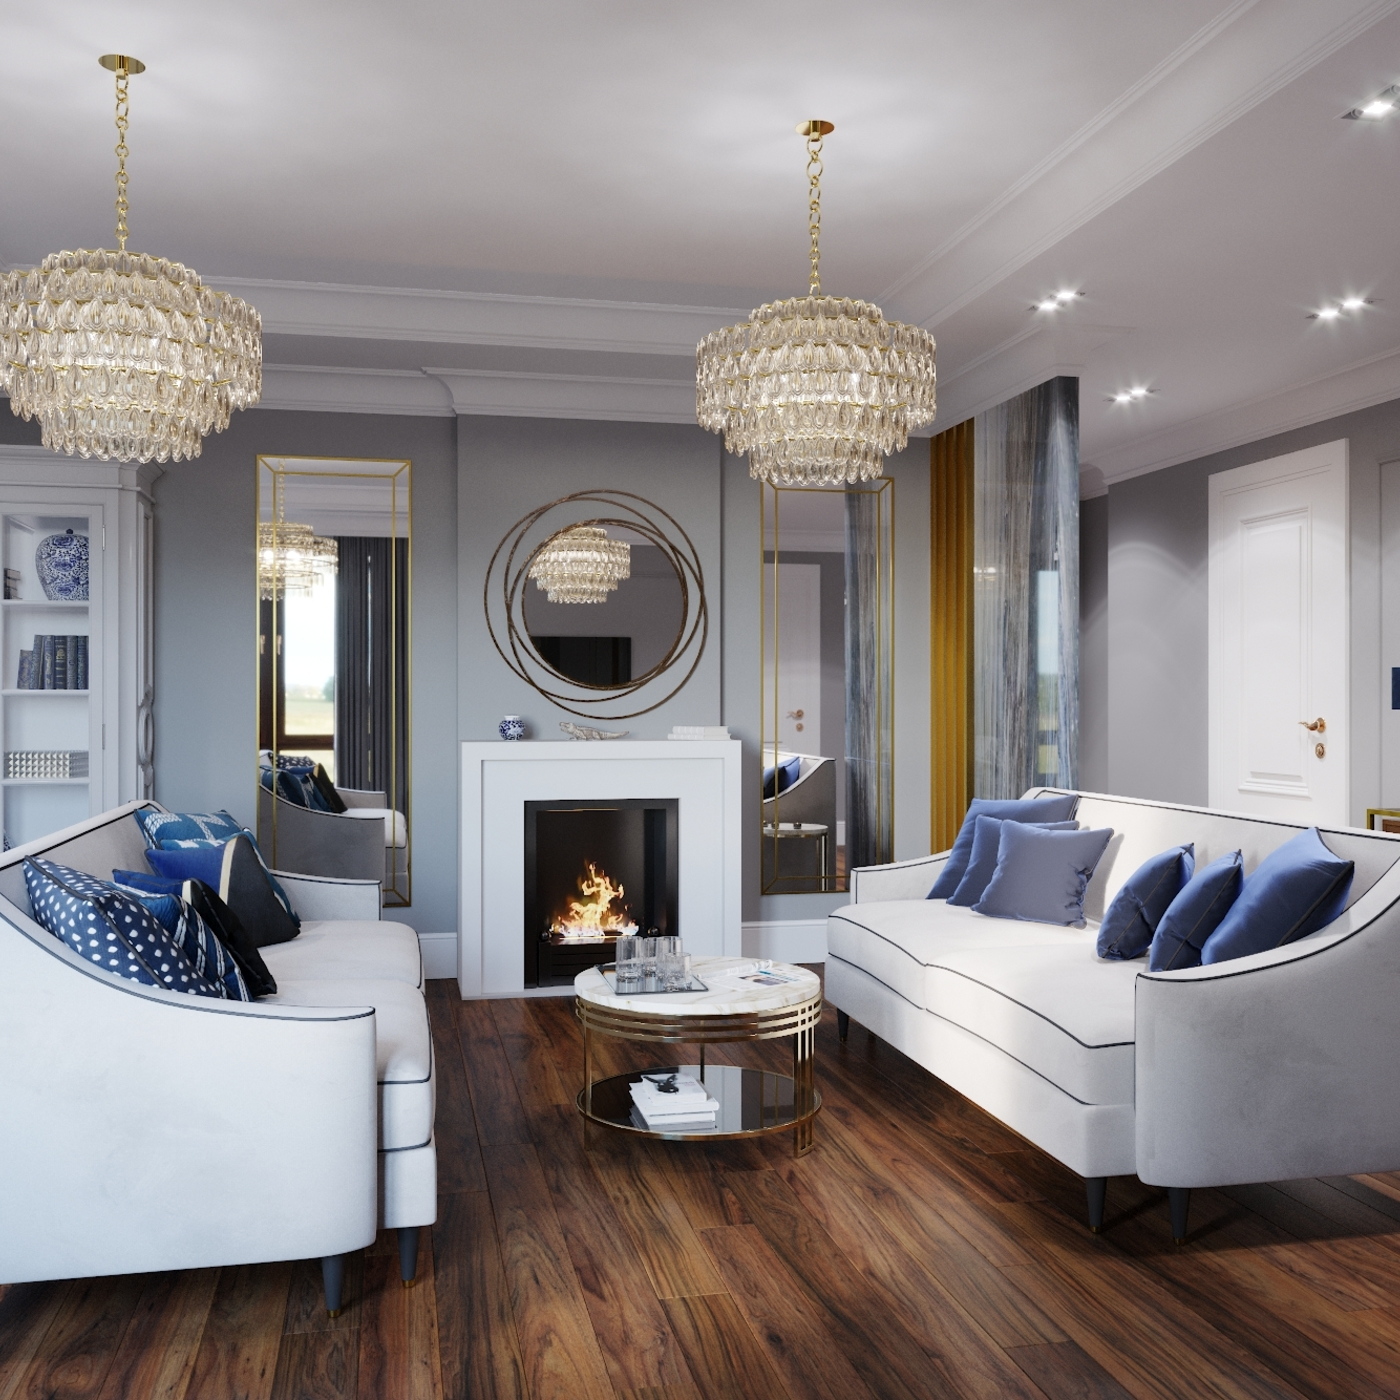 Living room in the classical style